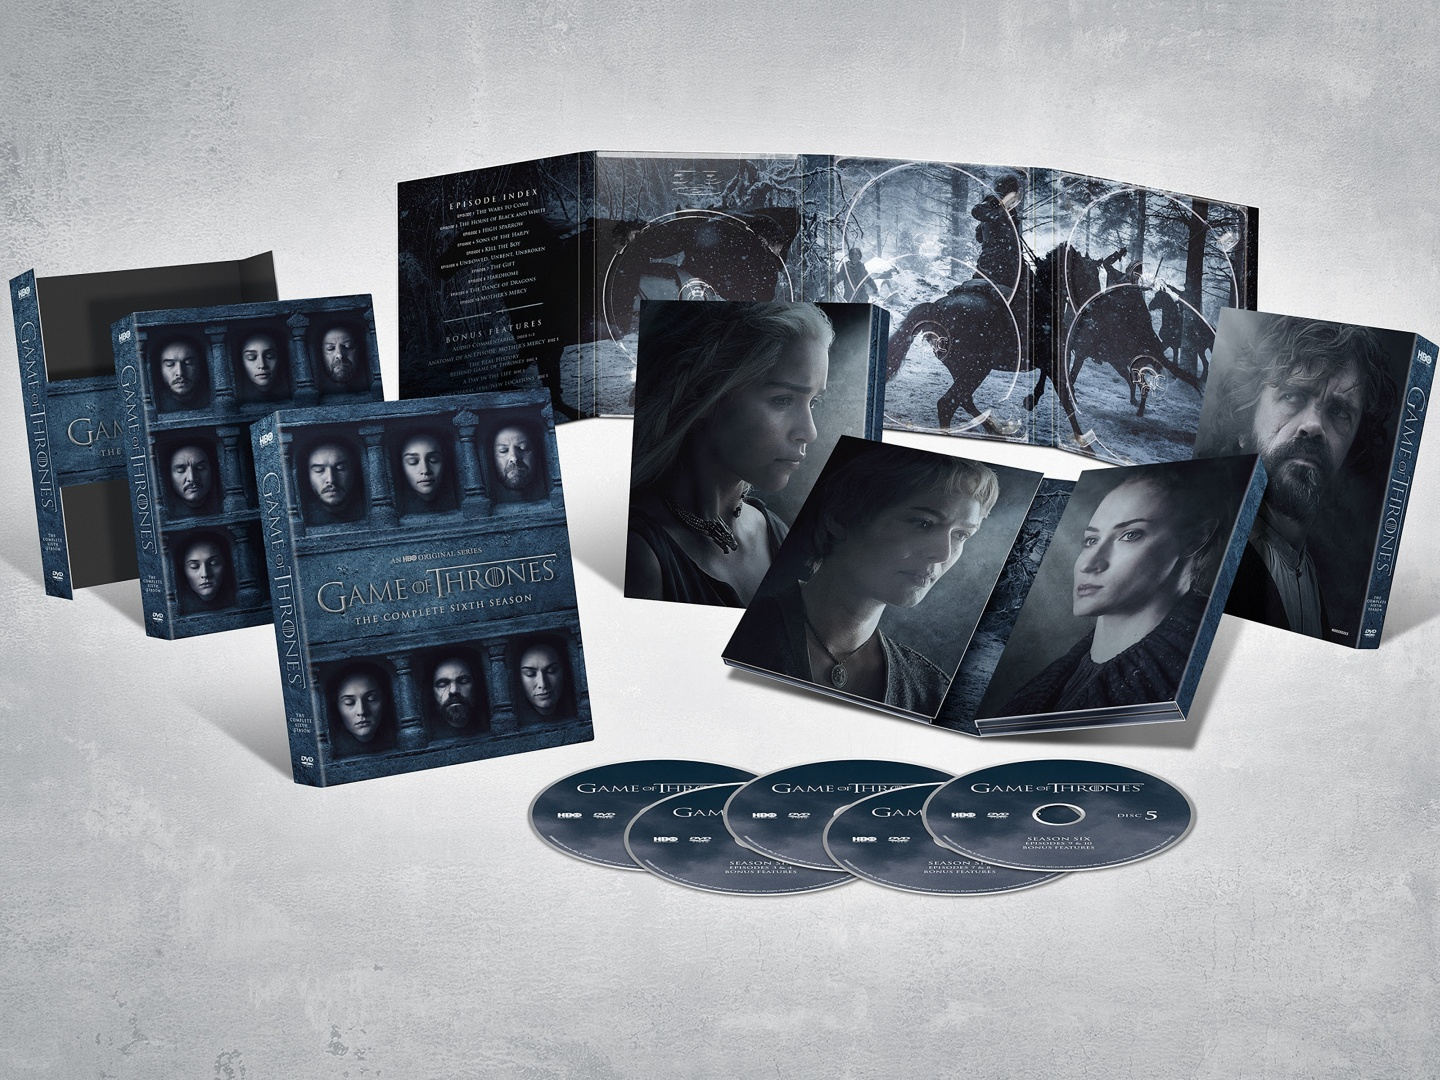 Game of Thrones 6th Season Blu-ray Thumbnail